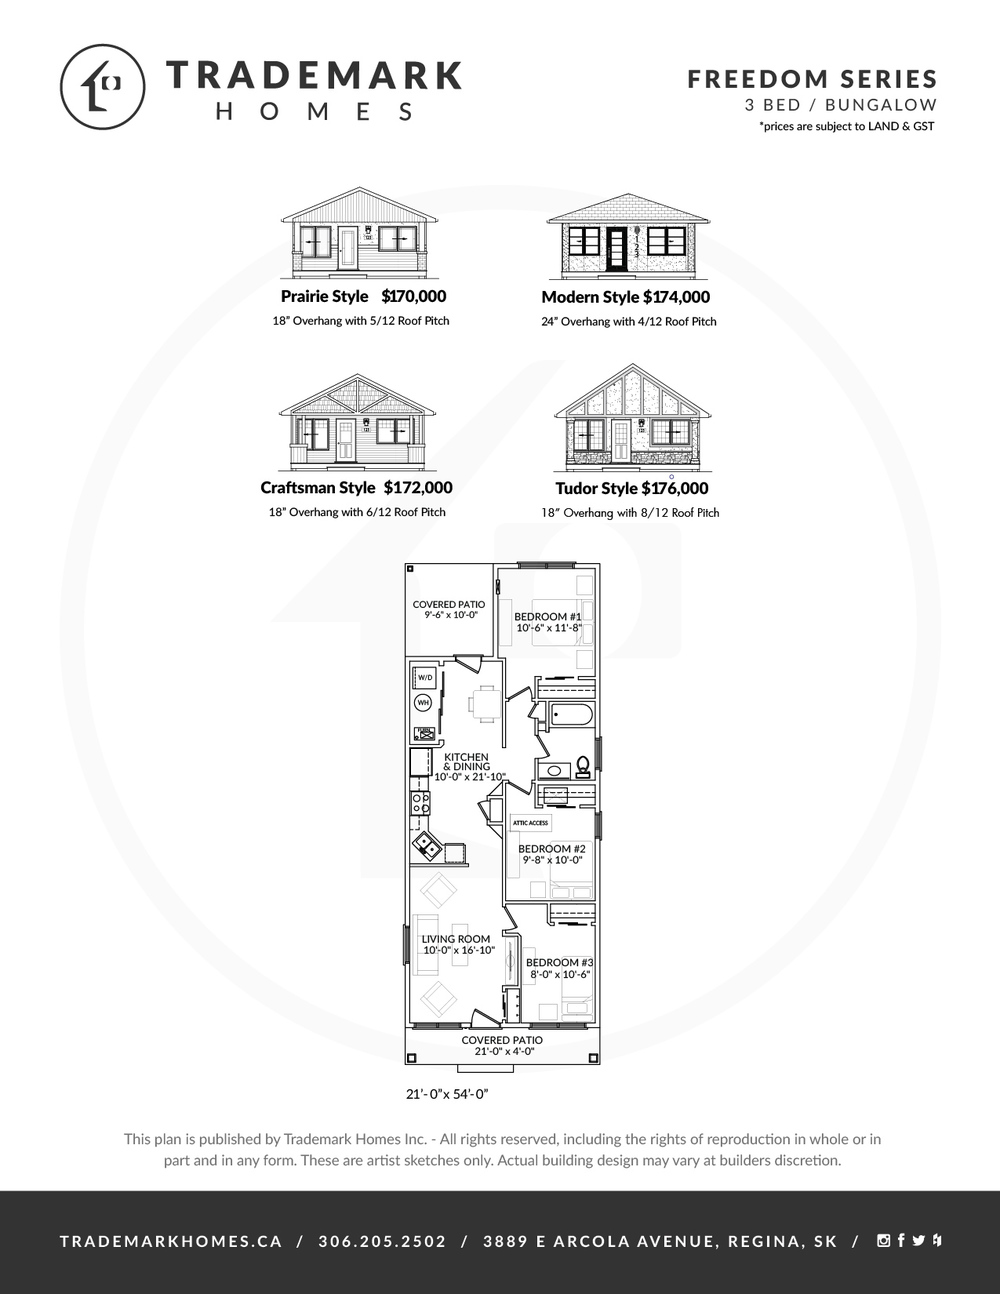 Freedom Series - 3 Bedroom Bungalow - Floorplan - Regina Home Builder - Harbour Landing